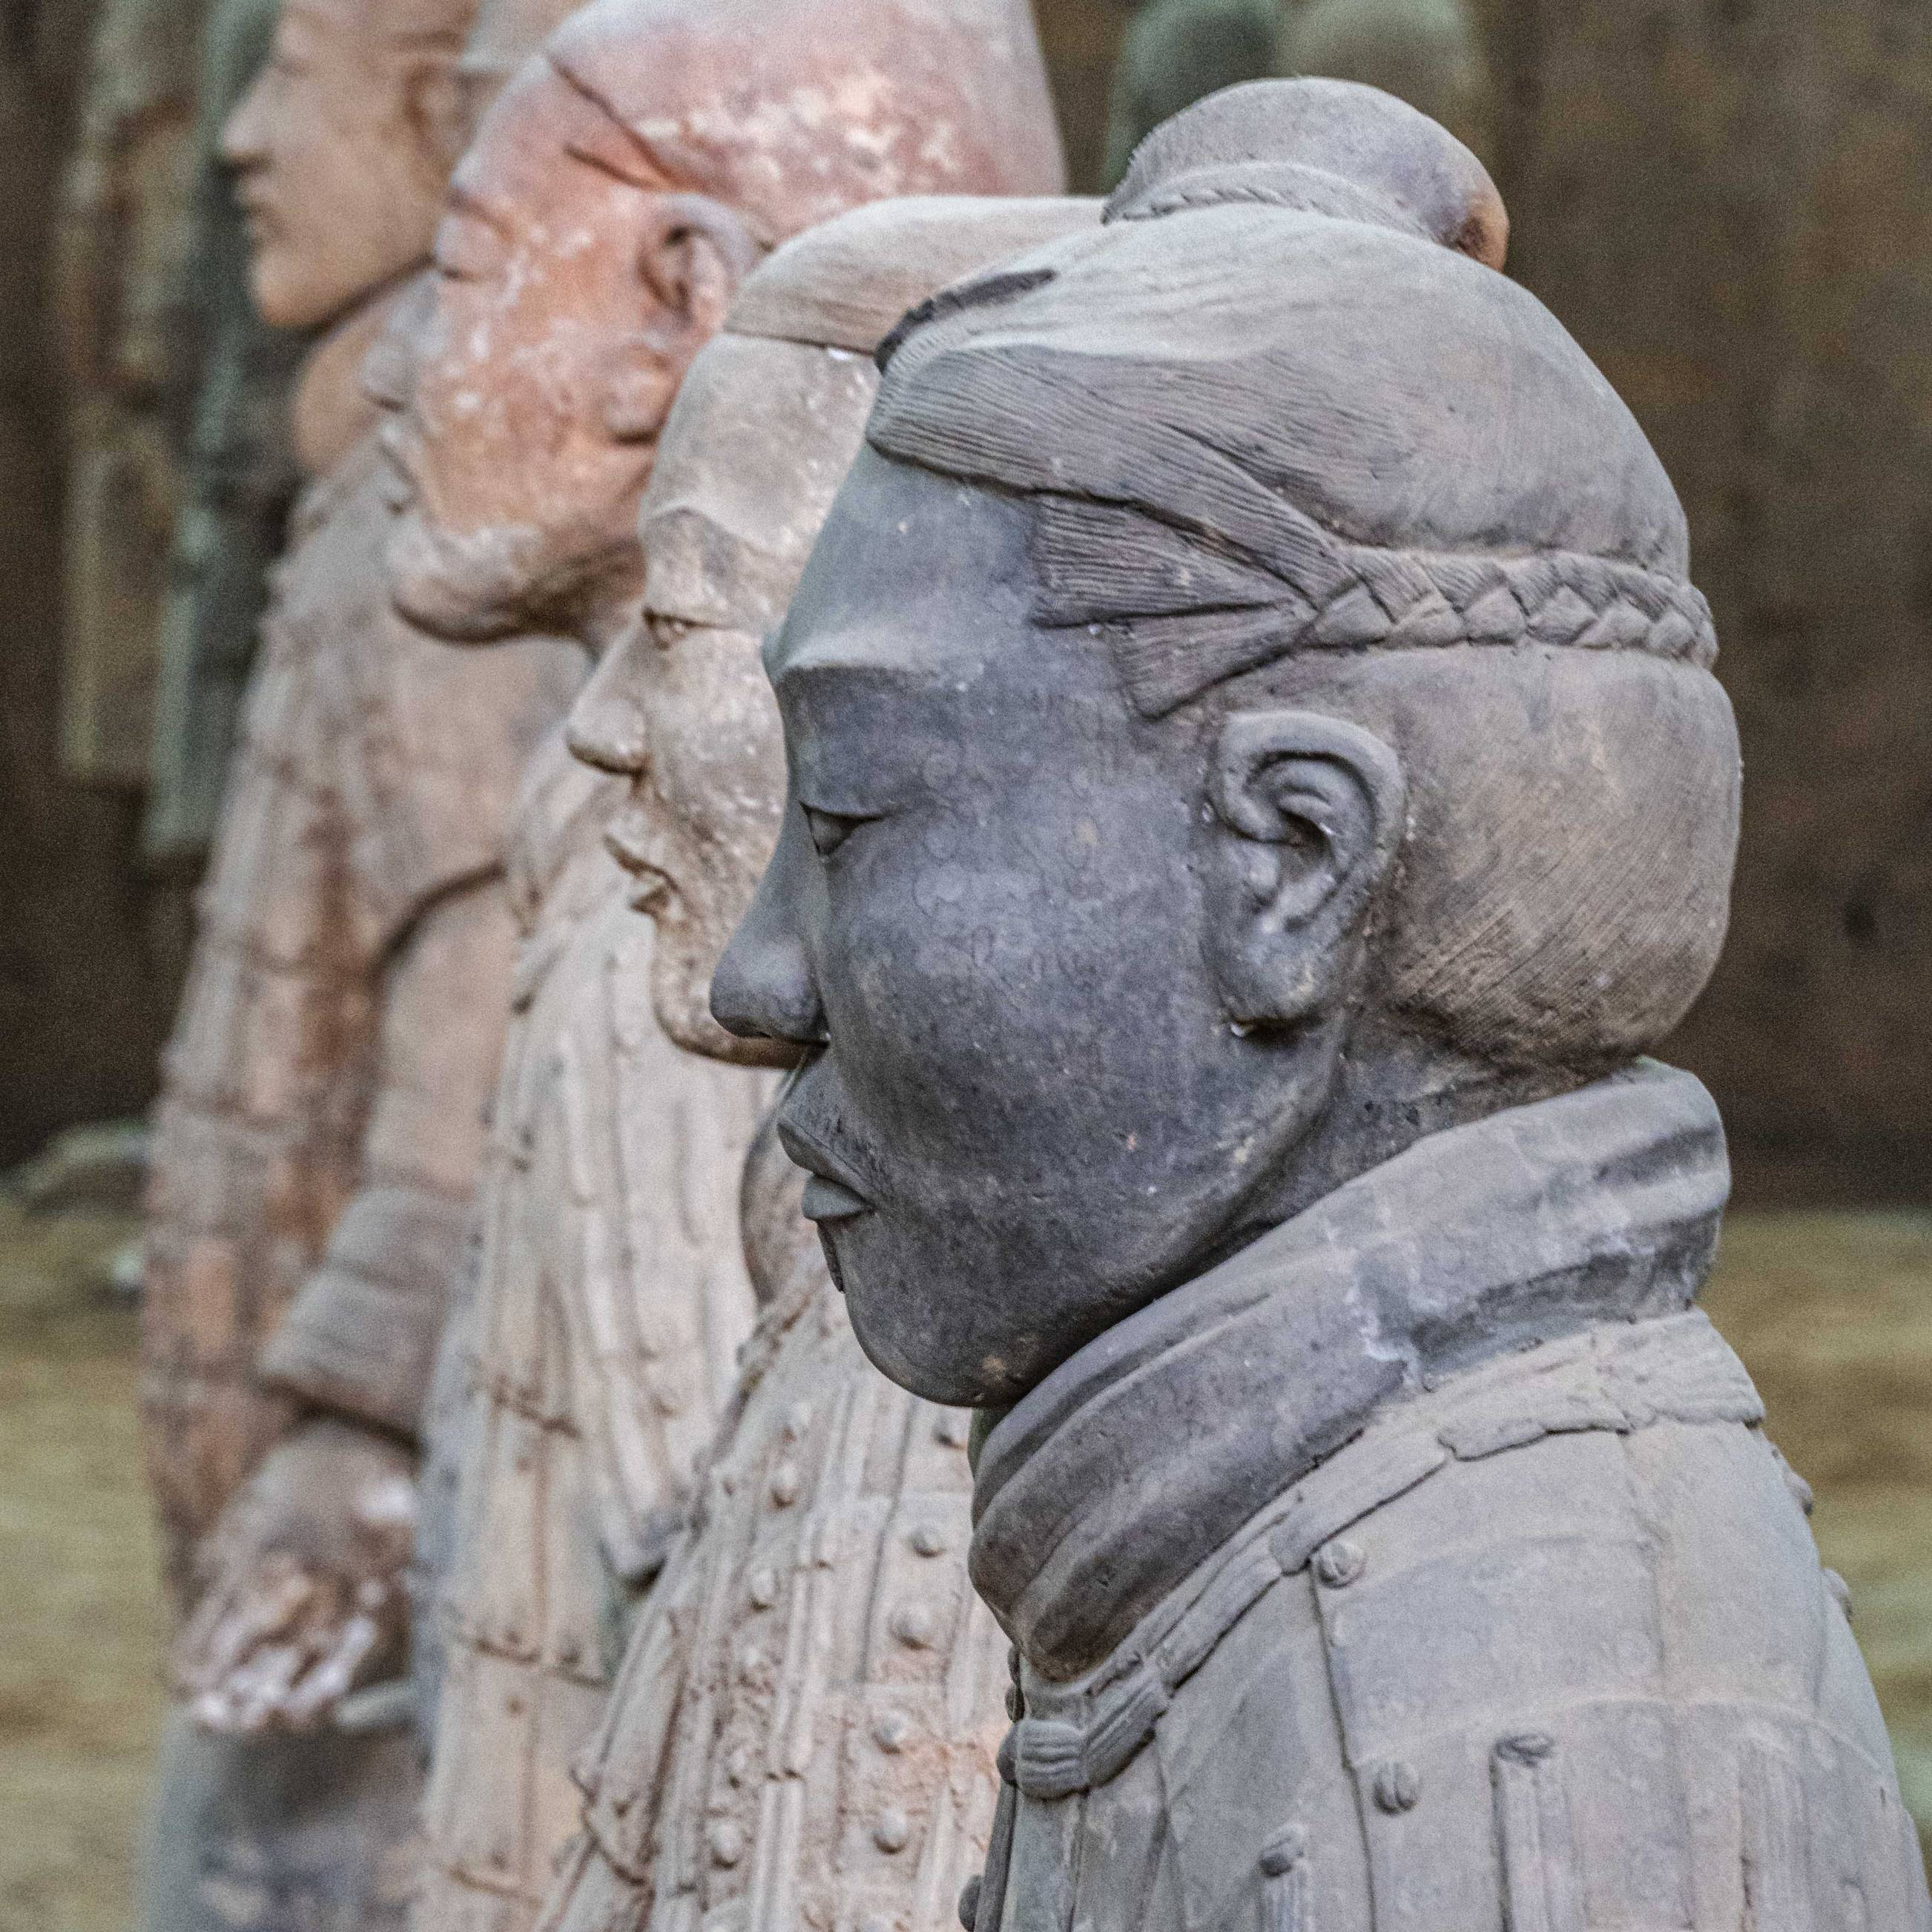 Teracotta Army in Xi'an